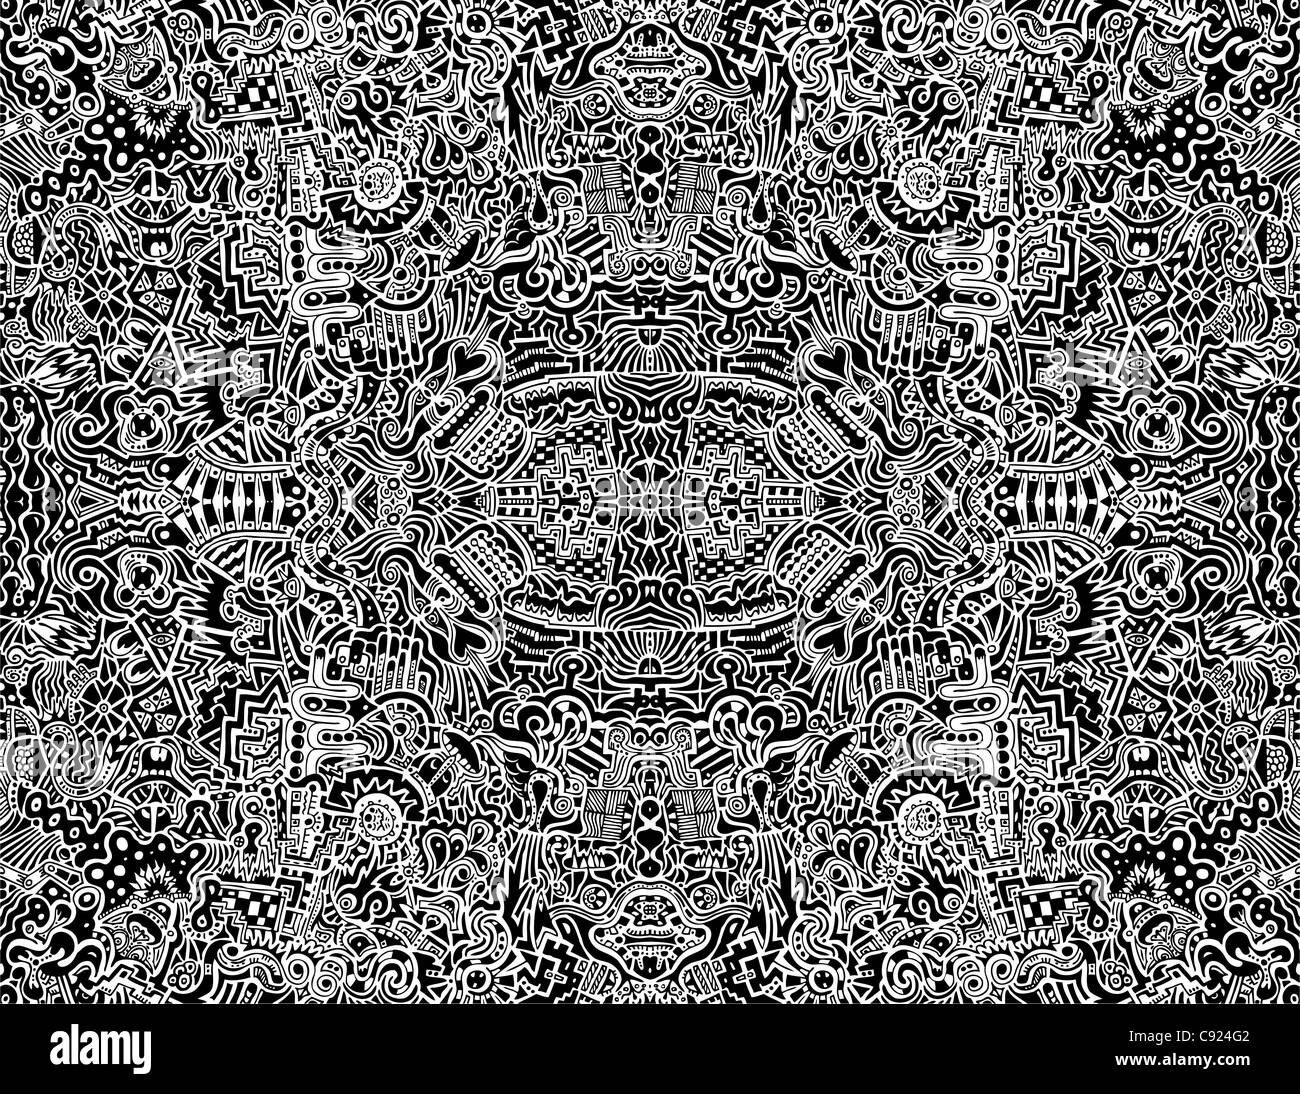 A highly complex, symmetrical, abstract seamless illustration. - Stock Image